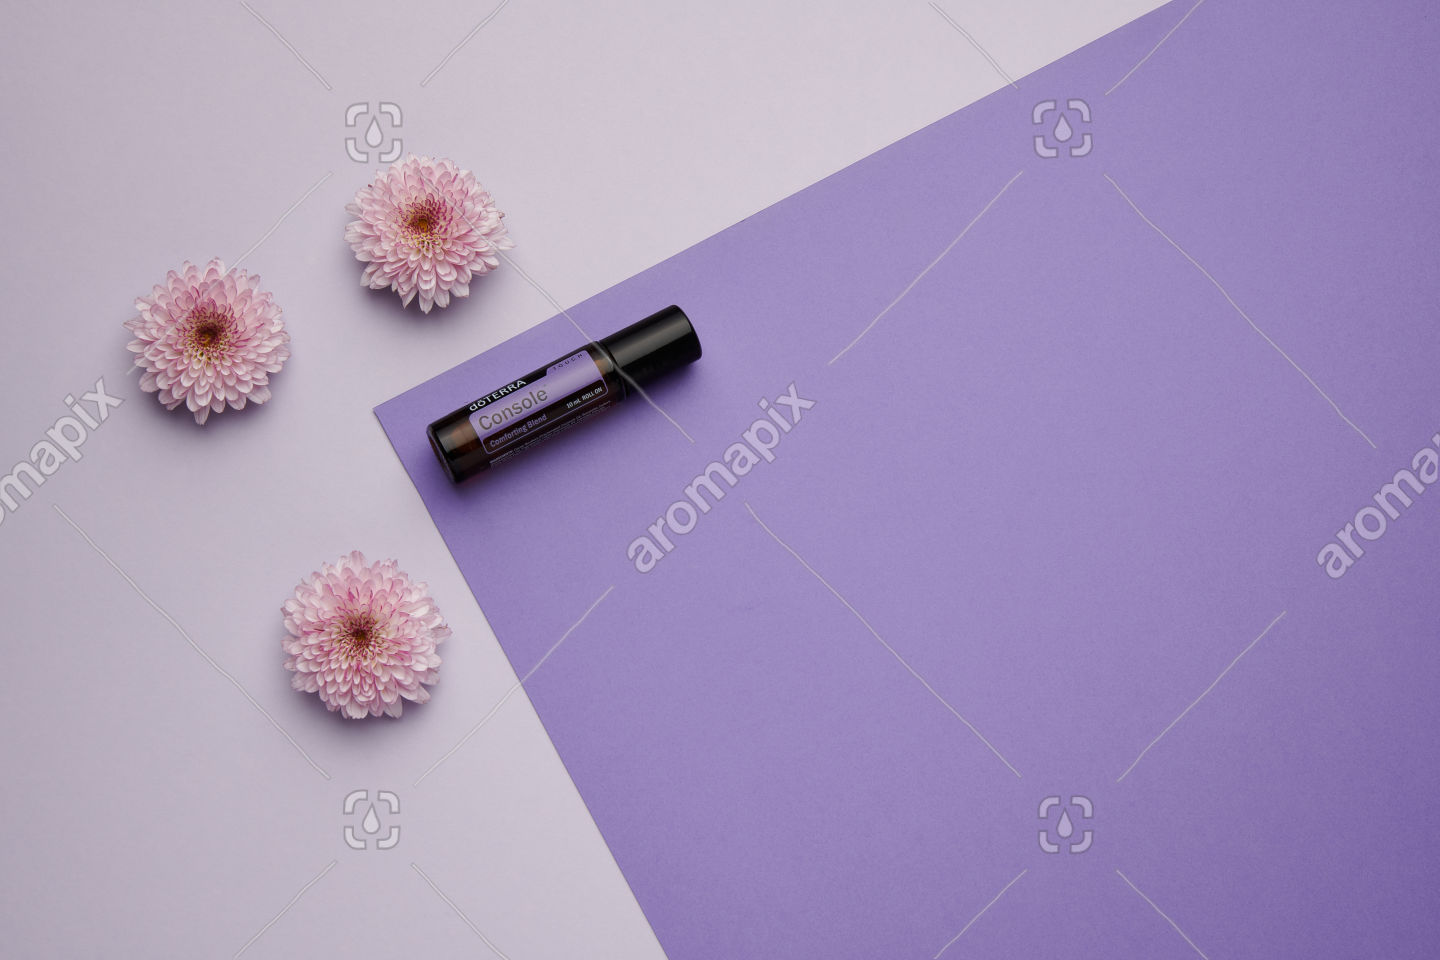 doTERRA Console Touch with flowers on dark and light purple